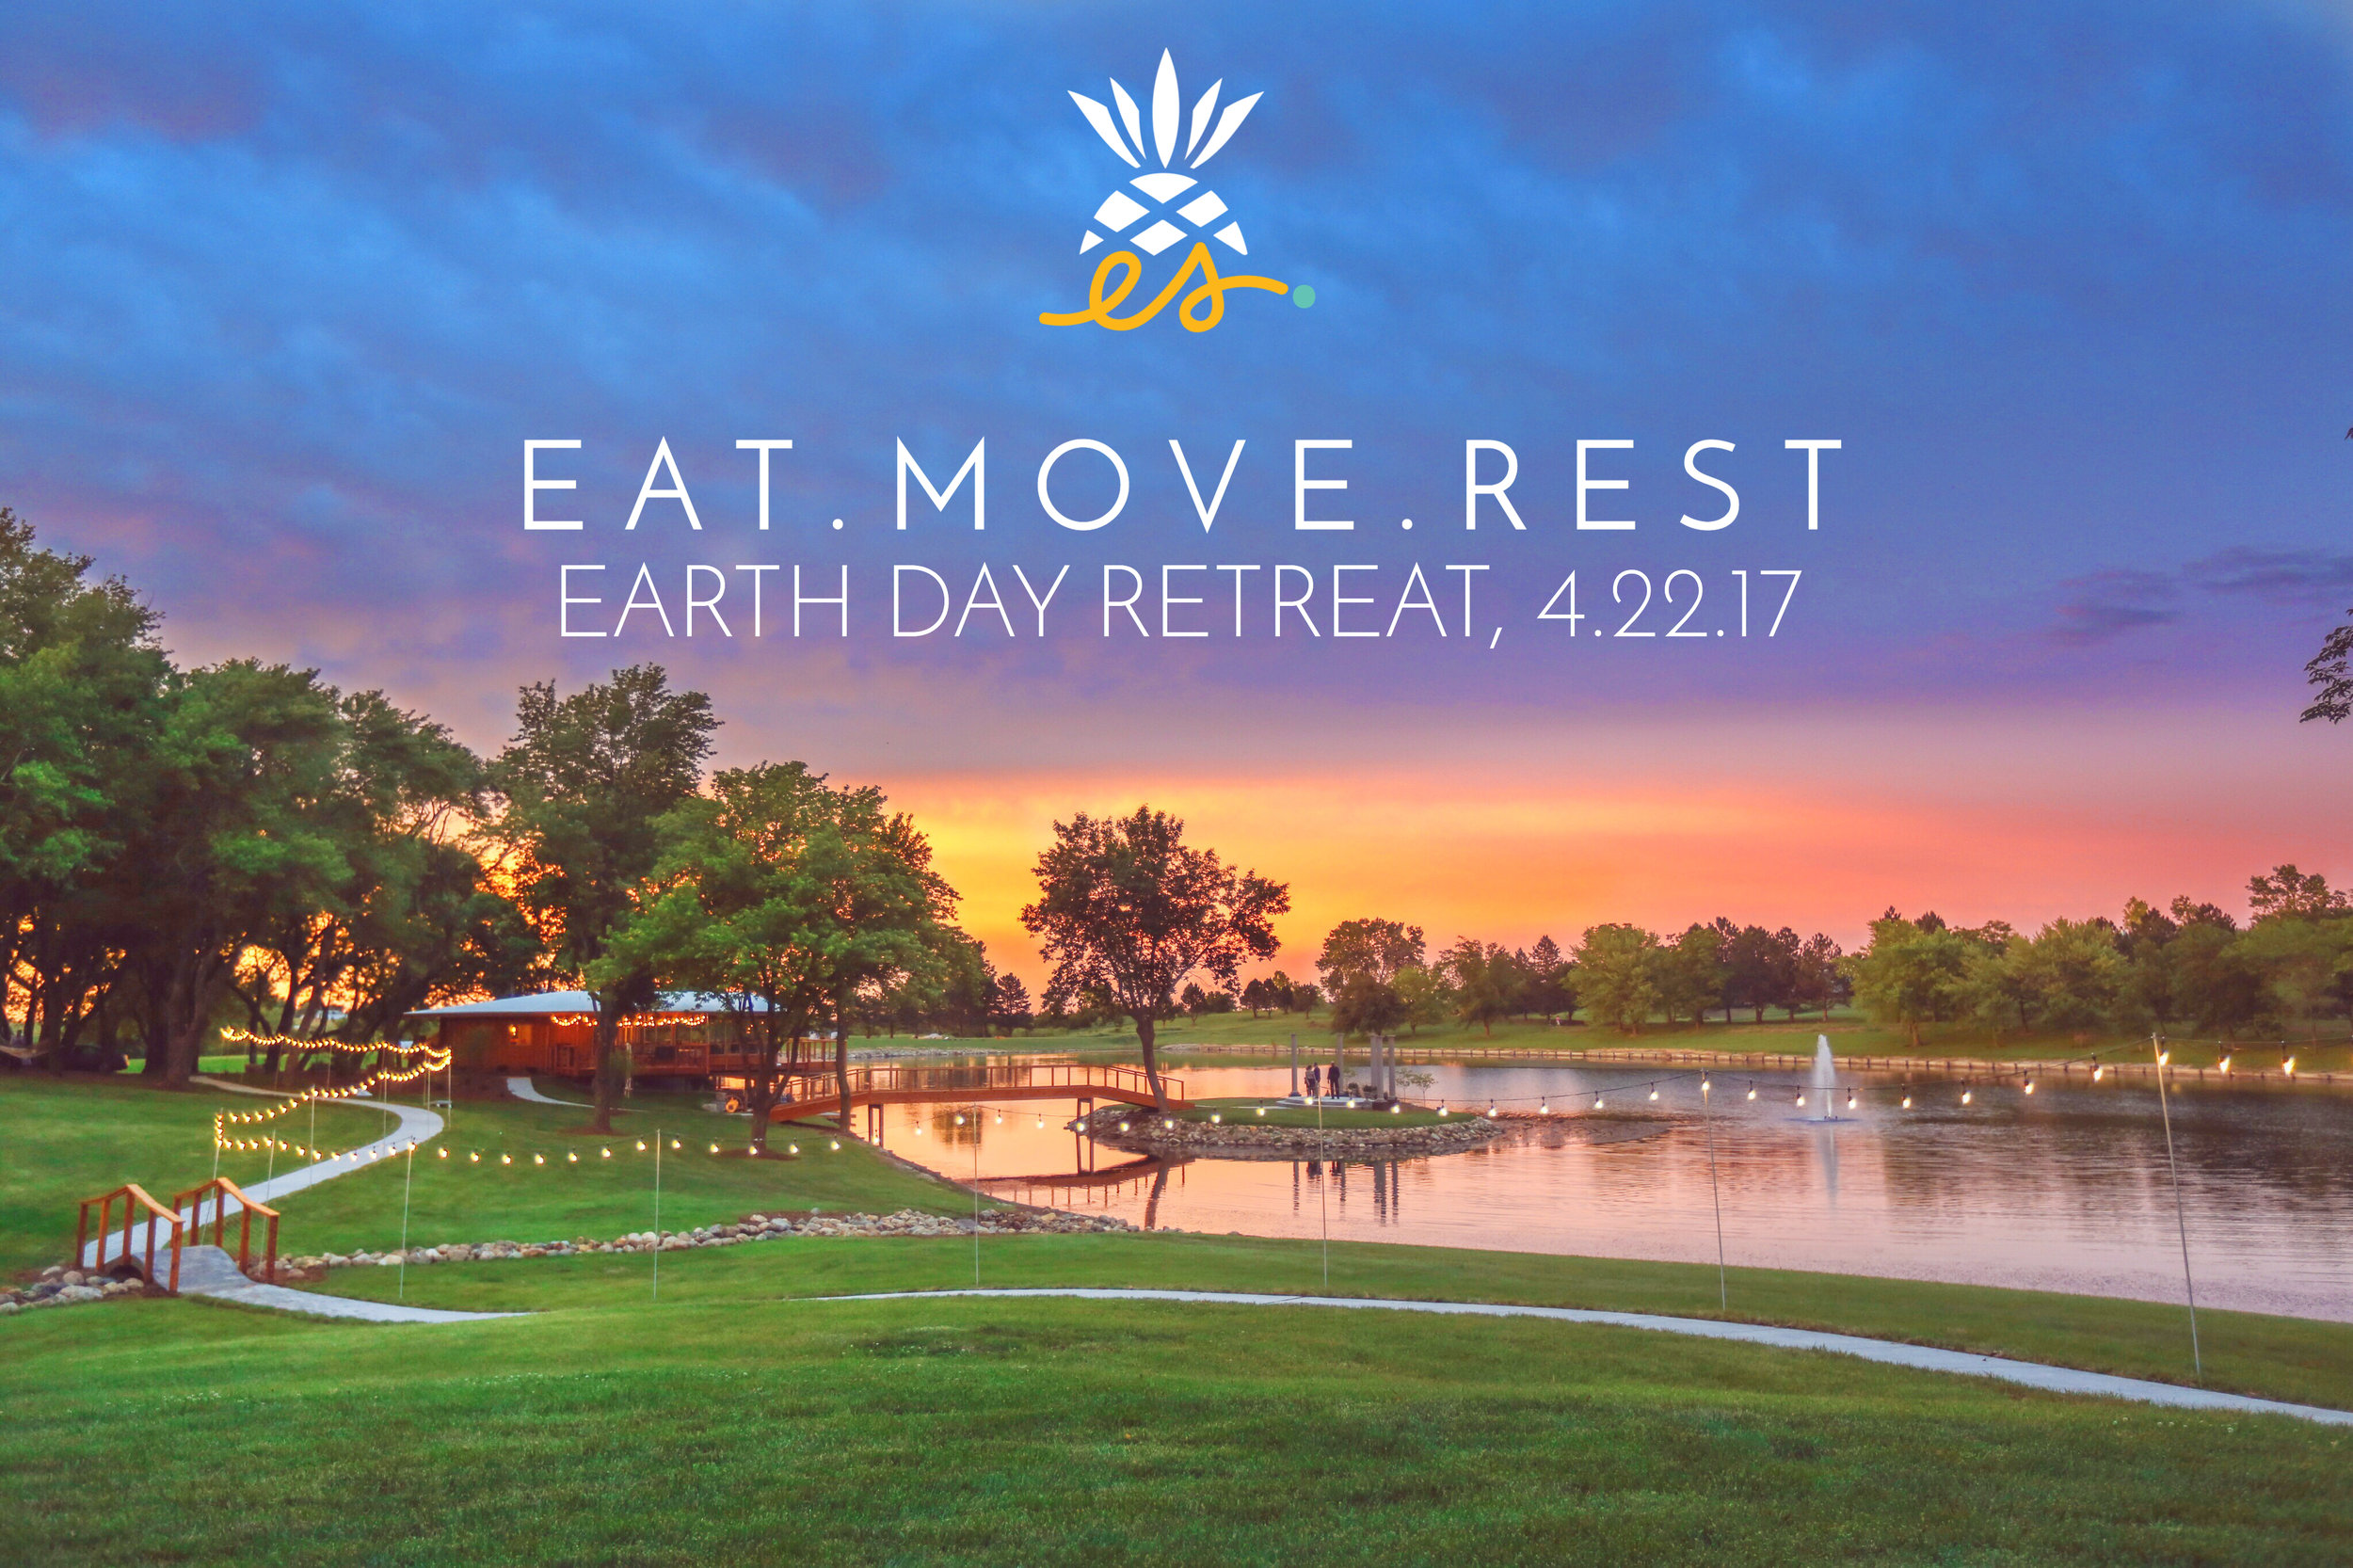 EatMoveRest Earth Day Retreat, April 22, 2017